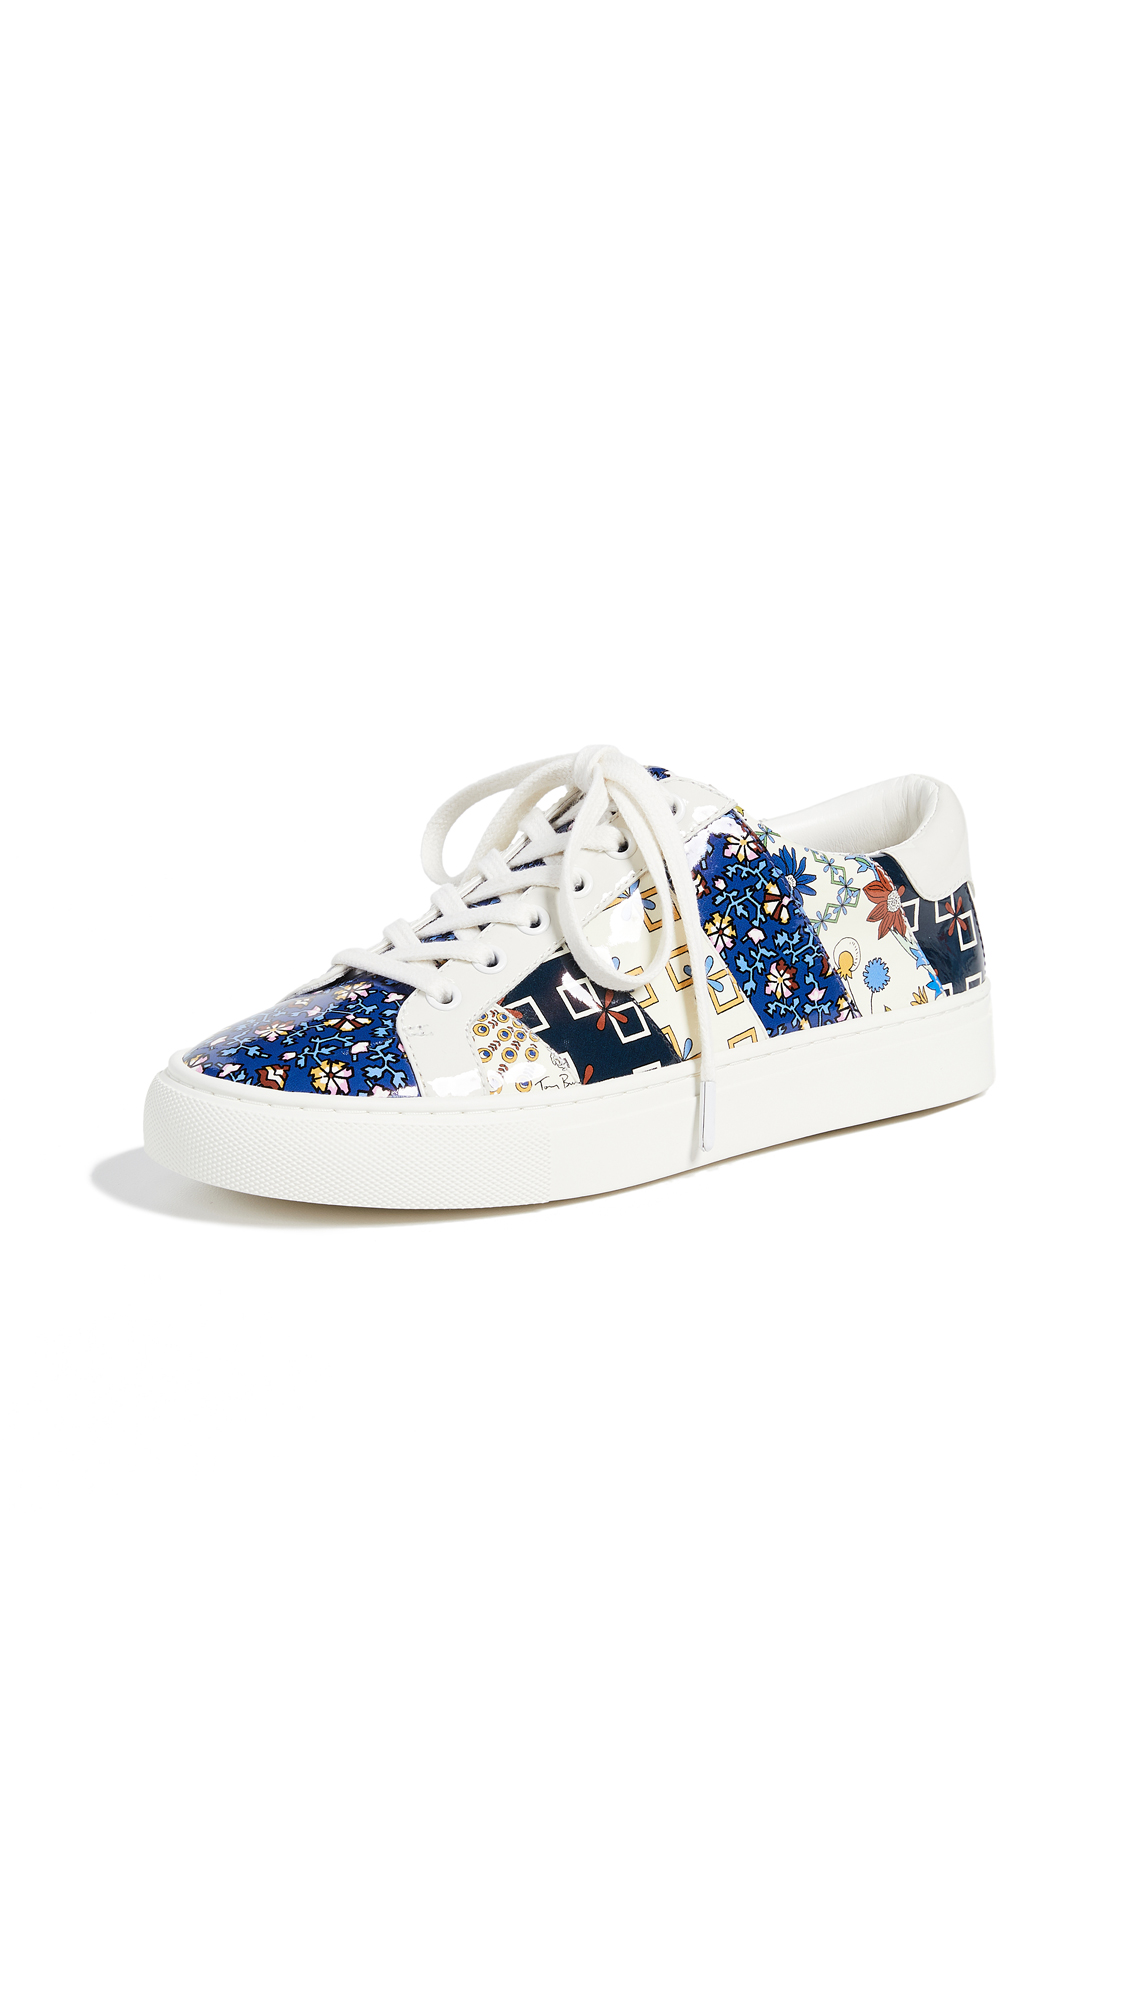 Tory Burch Ames Sneakers - Multi Print